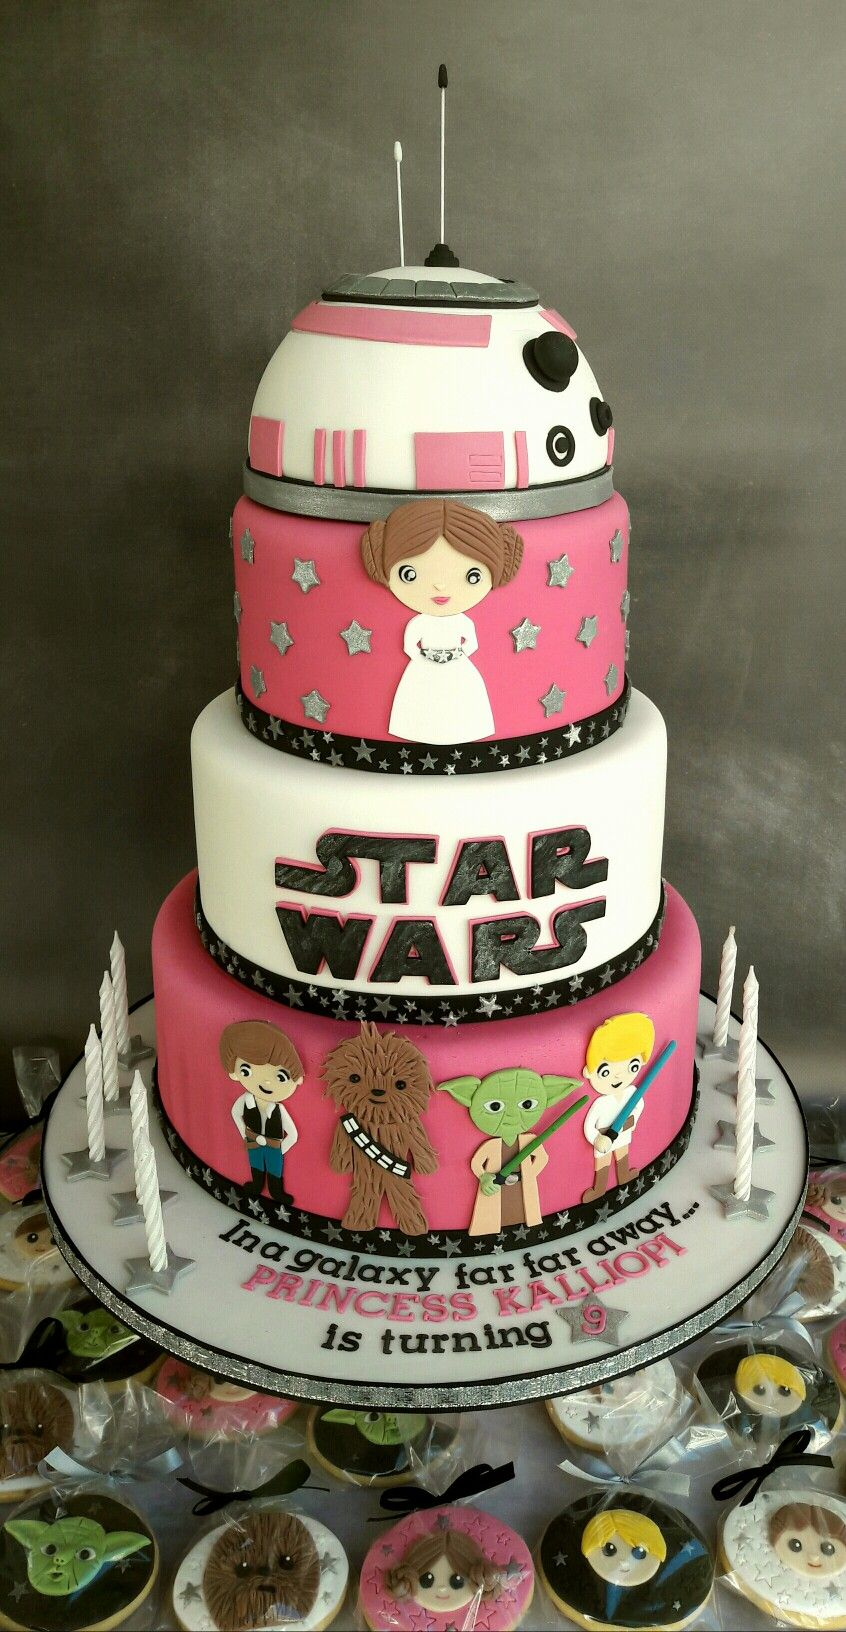 star wars wedding cake ideas princess leia wars cake and cookies my cakes 20506